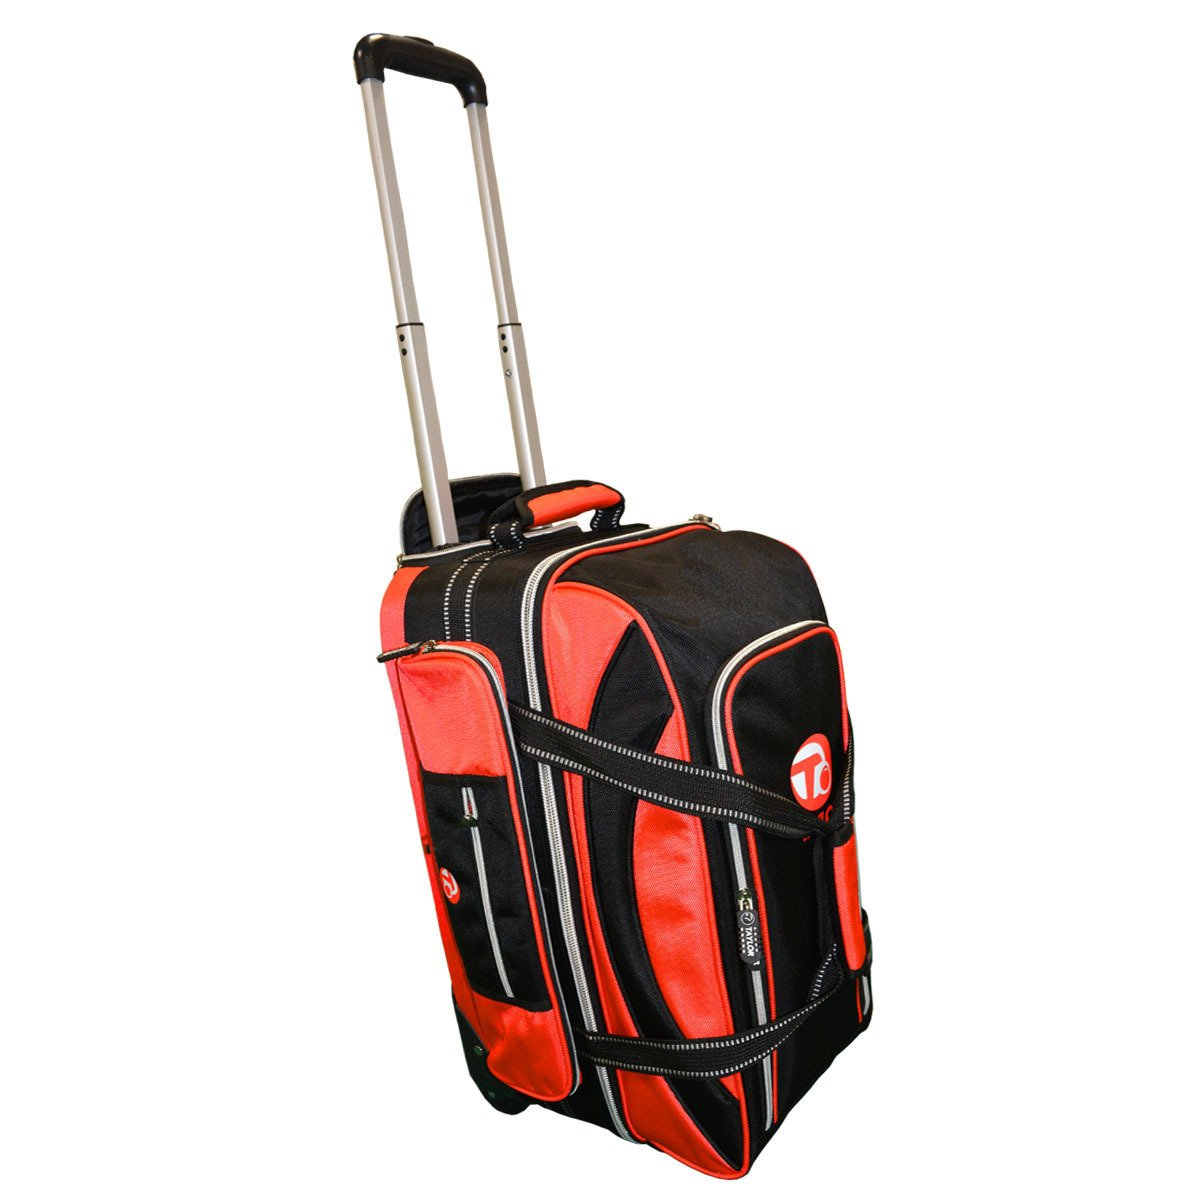 Taylor Ultimate Trolley Bag for Crown OR Flat Green Bowls 371 (Black/RED)